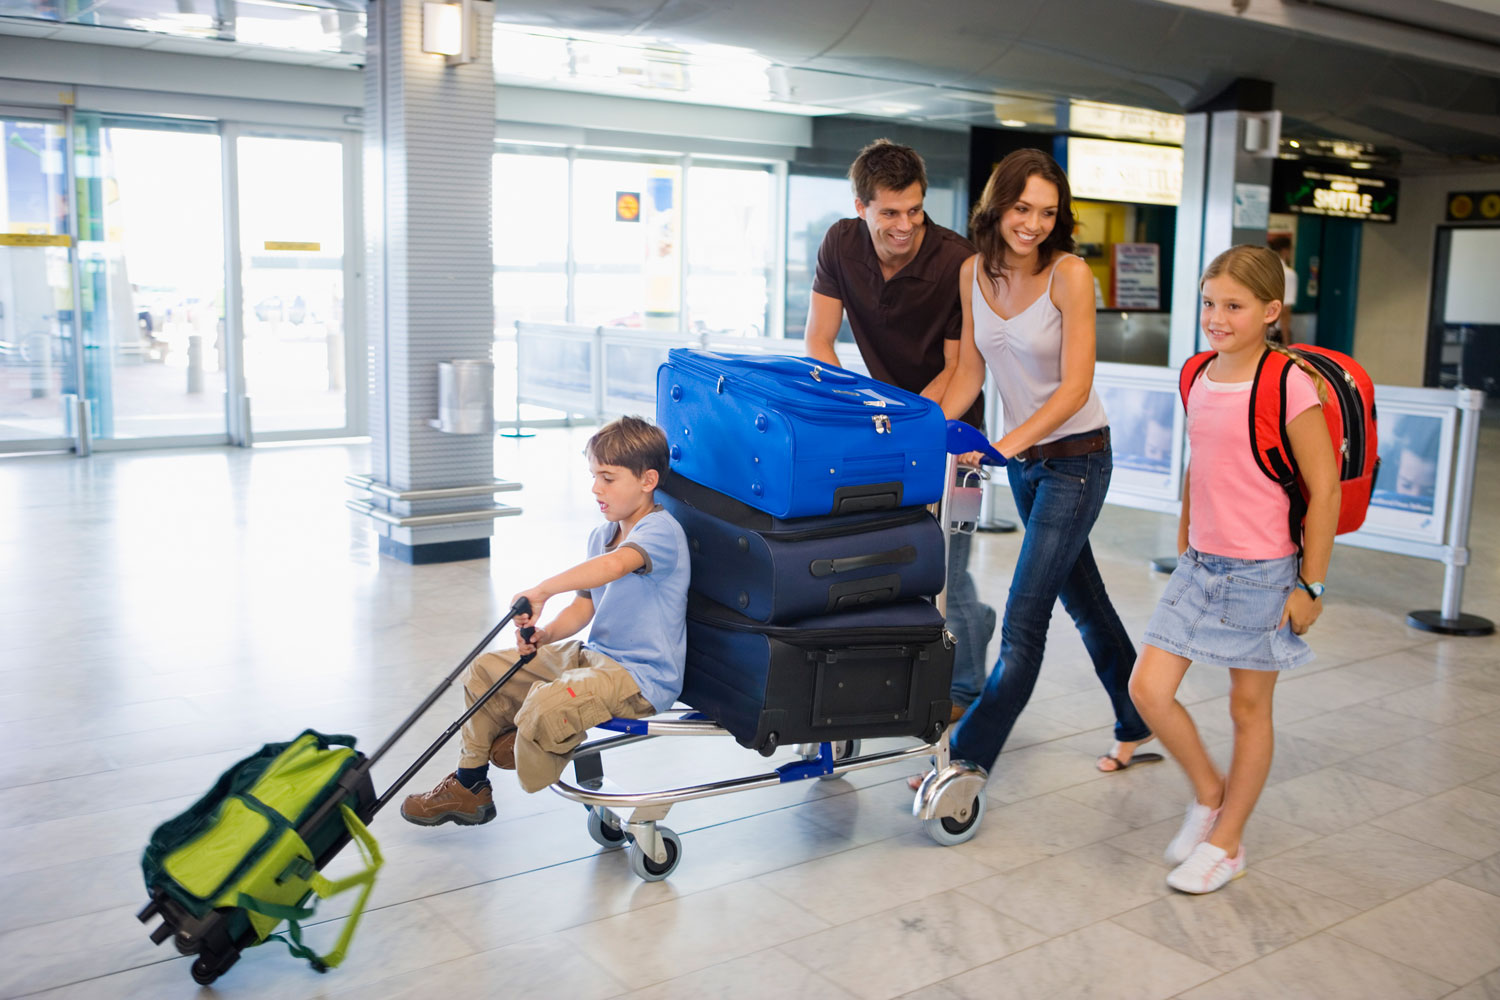 family_airport_baggage